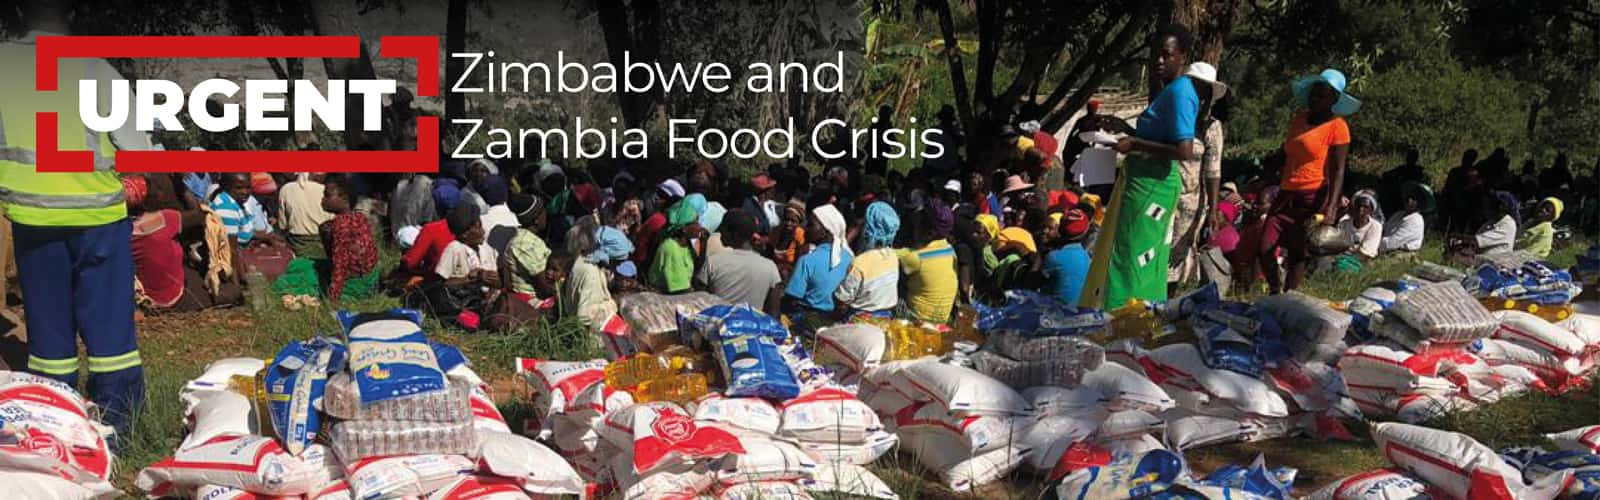 Donate to our Emergency Appeal for Zimbabwe and Zambia